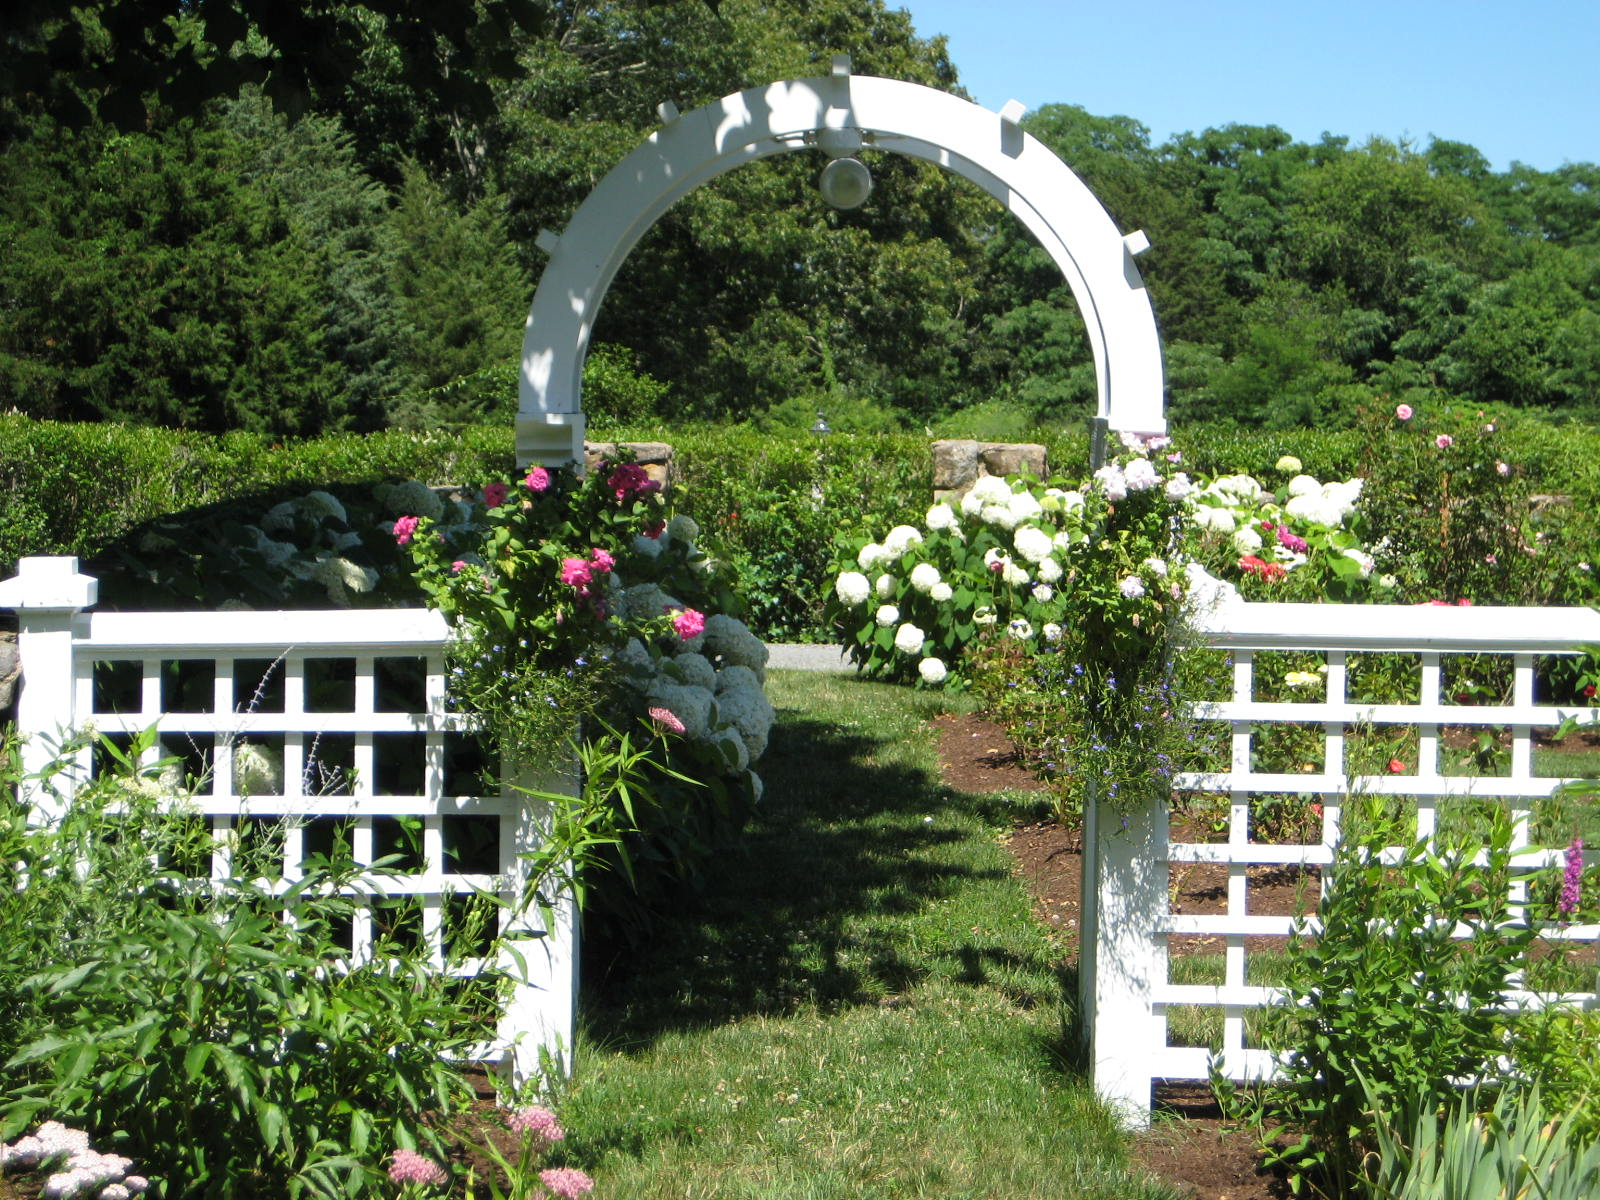 Gardens with arches  luxurious way to express yourself